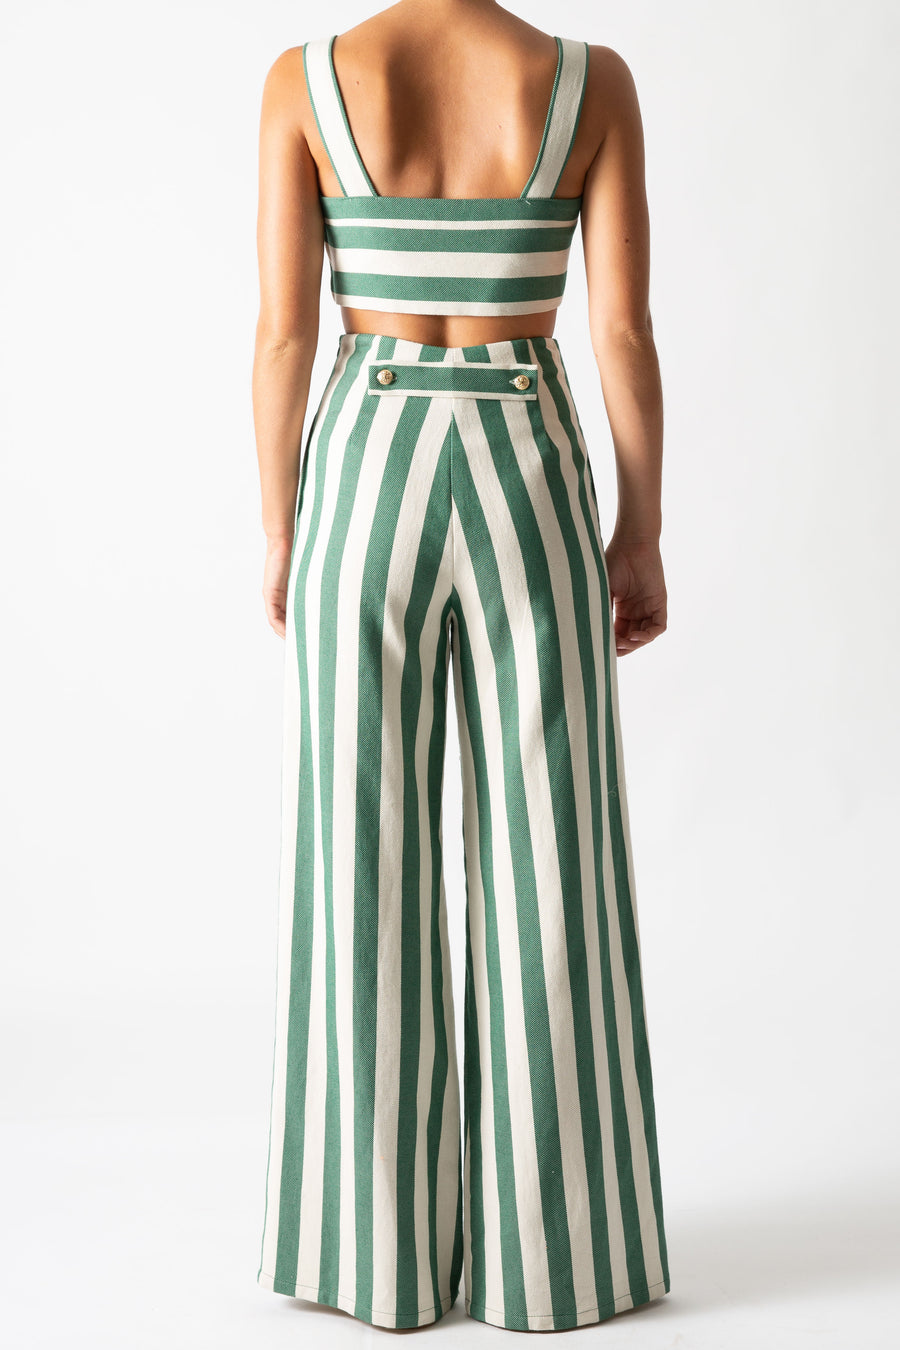 This is a back view photo of a woman wearing a matching two piece green striped set with gold buttons.  The pants are high waisted and long with a flare and the top is cropped with straps.